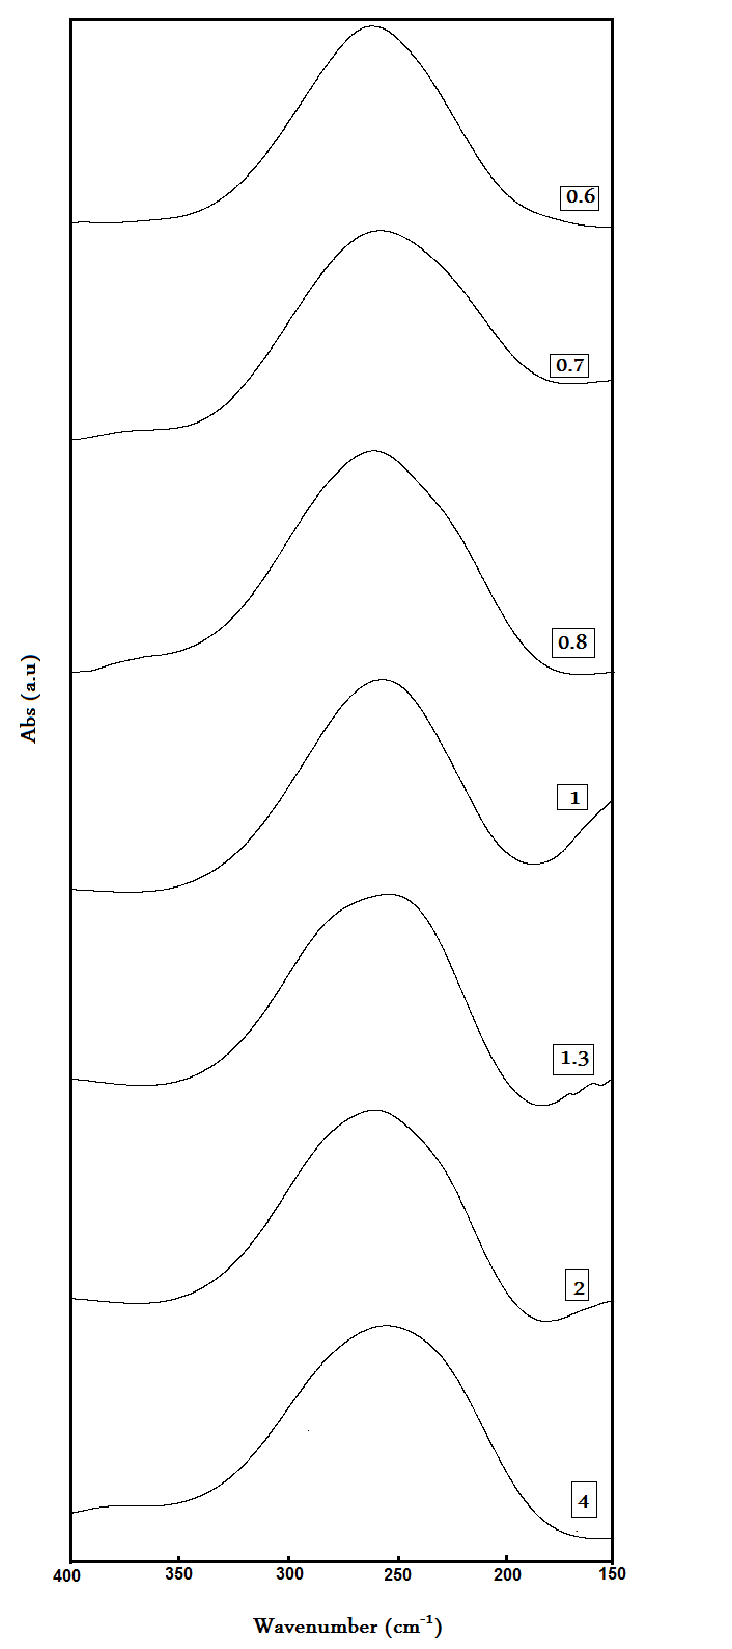 Far infrared absorption spectra of CdS nanoparticles